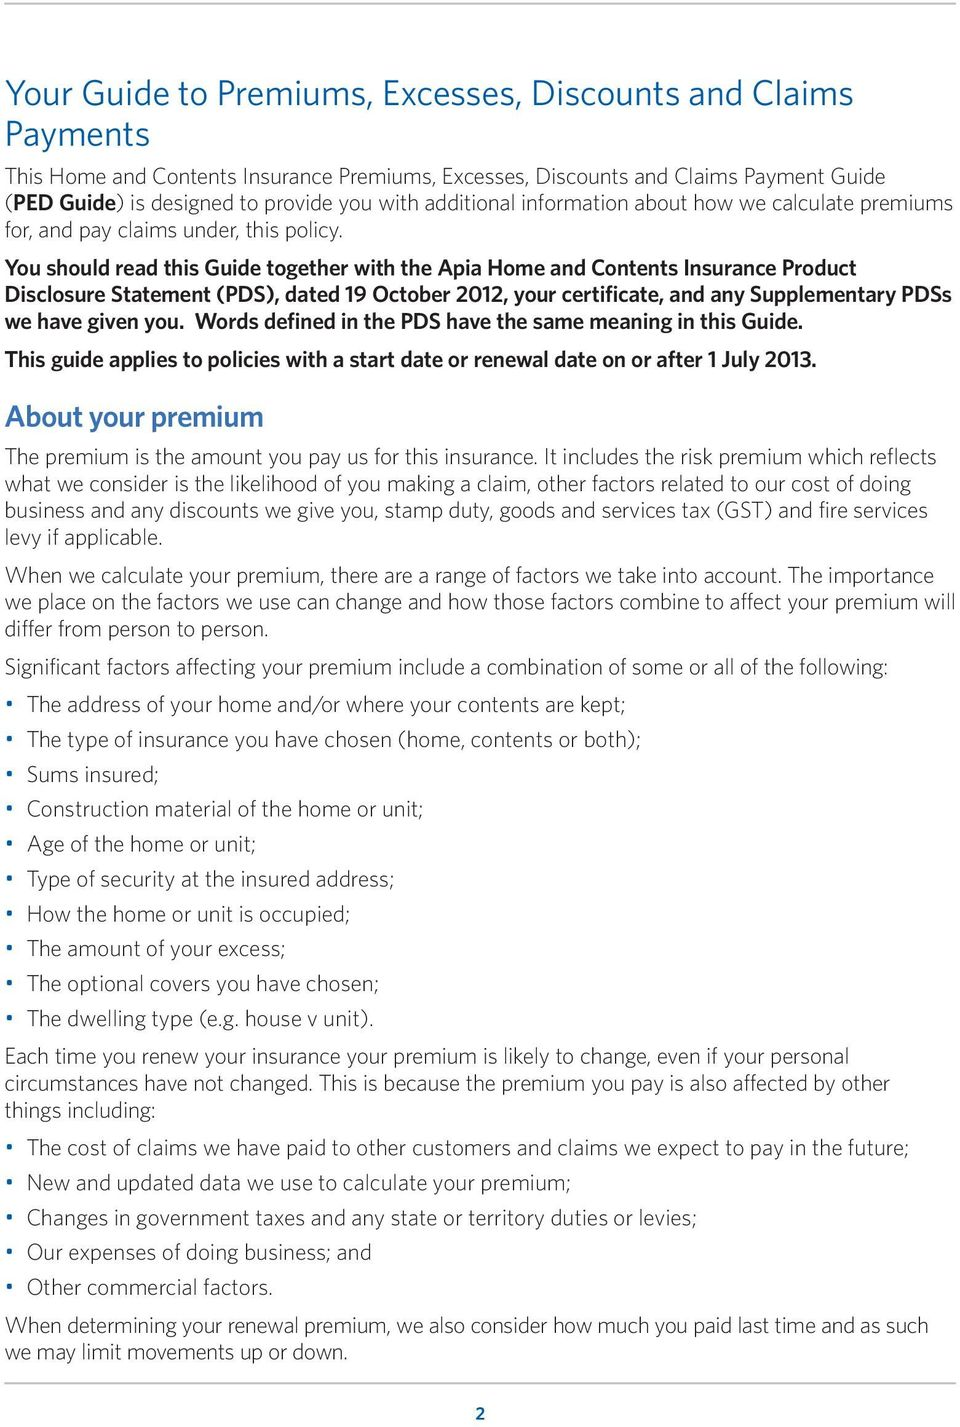 You should read this Guide together with the Apia Home and Contents Insurance Product Disclosure Statement (PDS), dated 19 October 2012, your certificate, and any Supplementary PDSs we have given you.